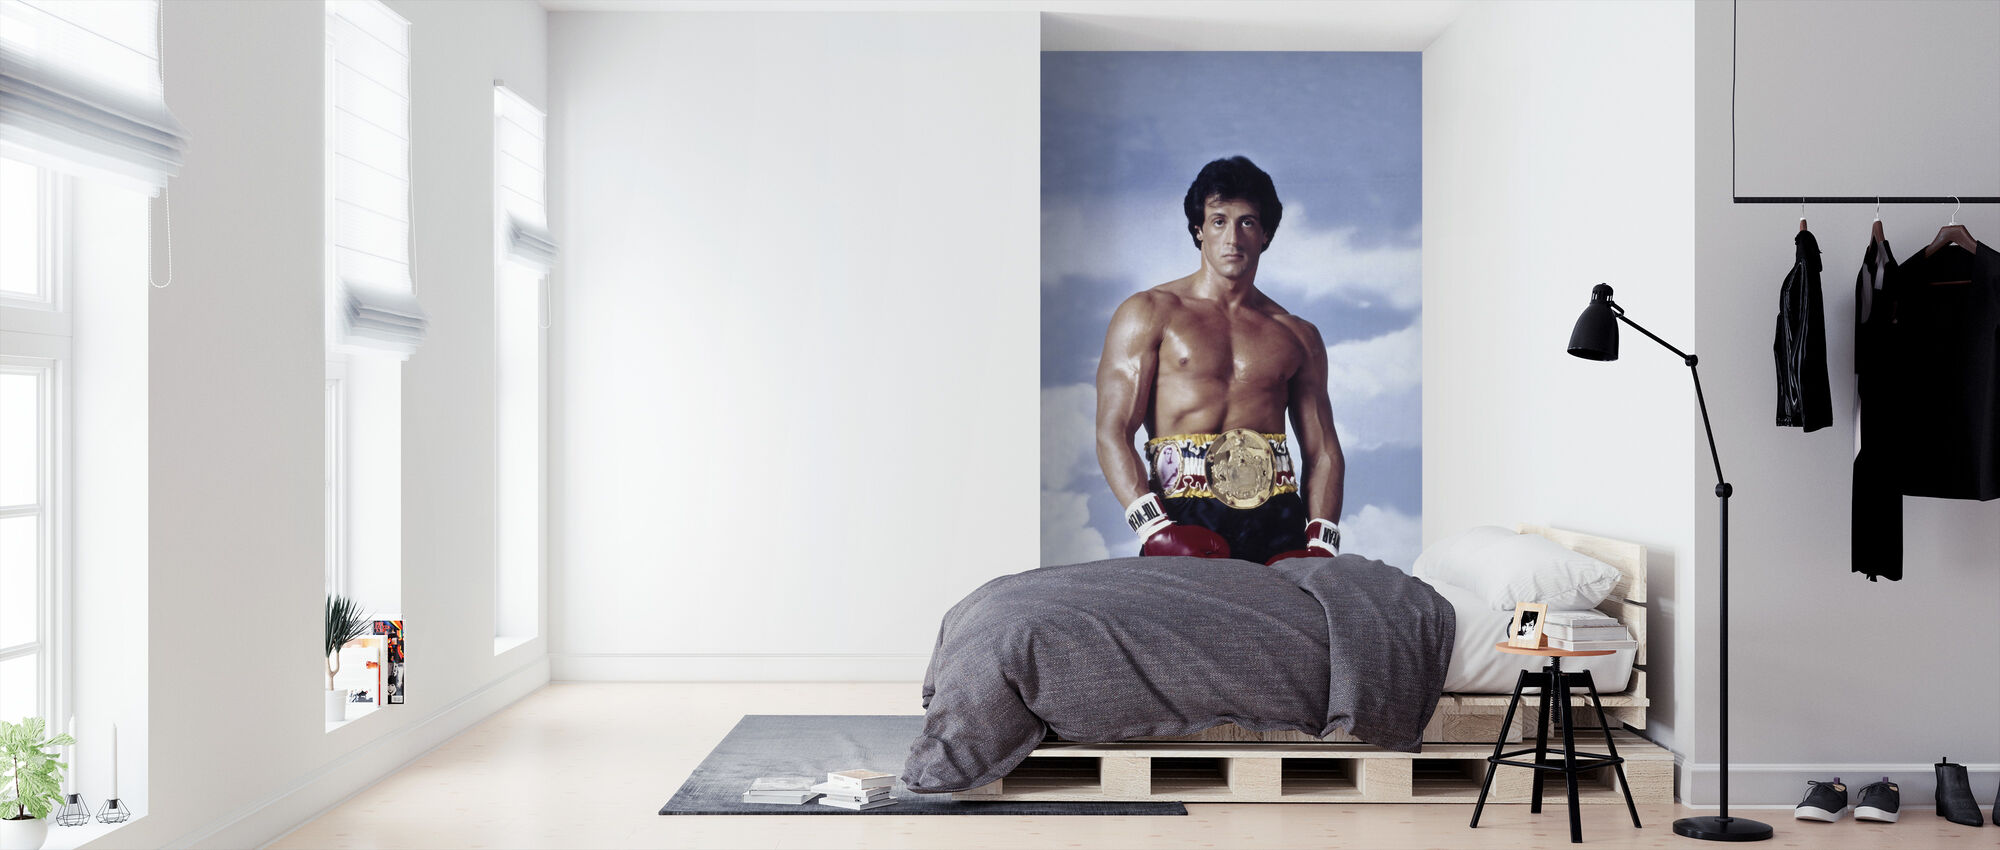 Sylvester Stallone in Rocky III - Wallpaper - Bedroom